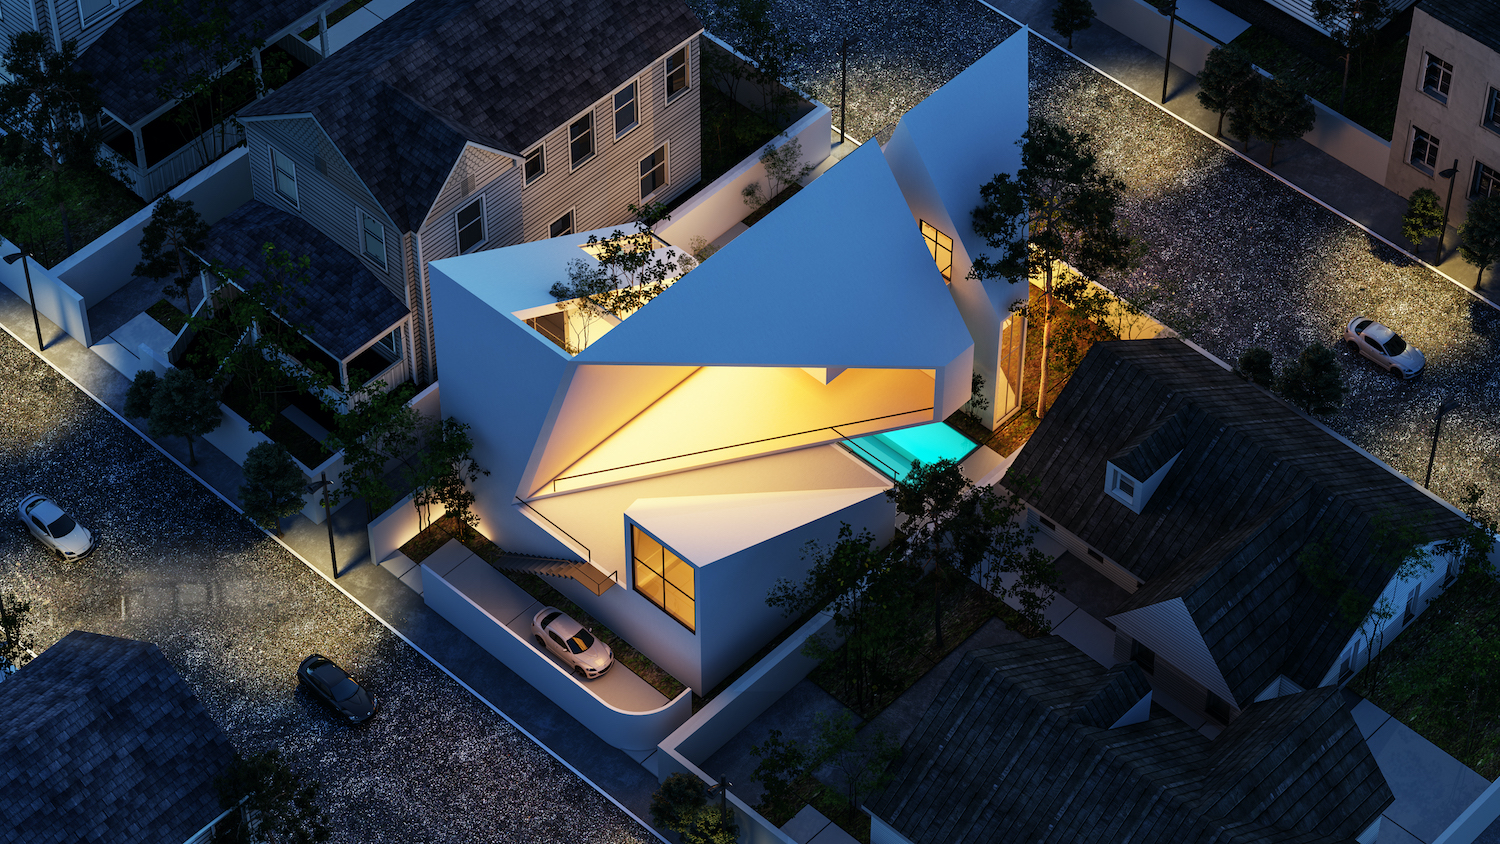 Villa no. 13 in Ramsar, Iran by Saeb Alimmohammadi with central opening